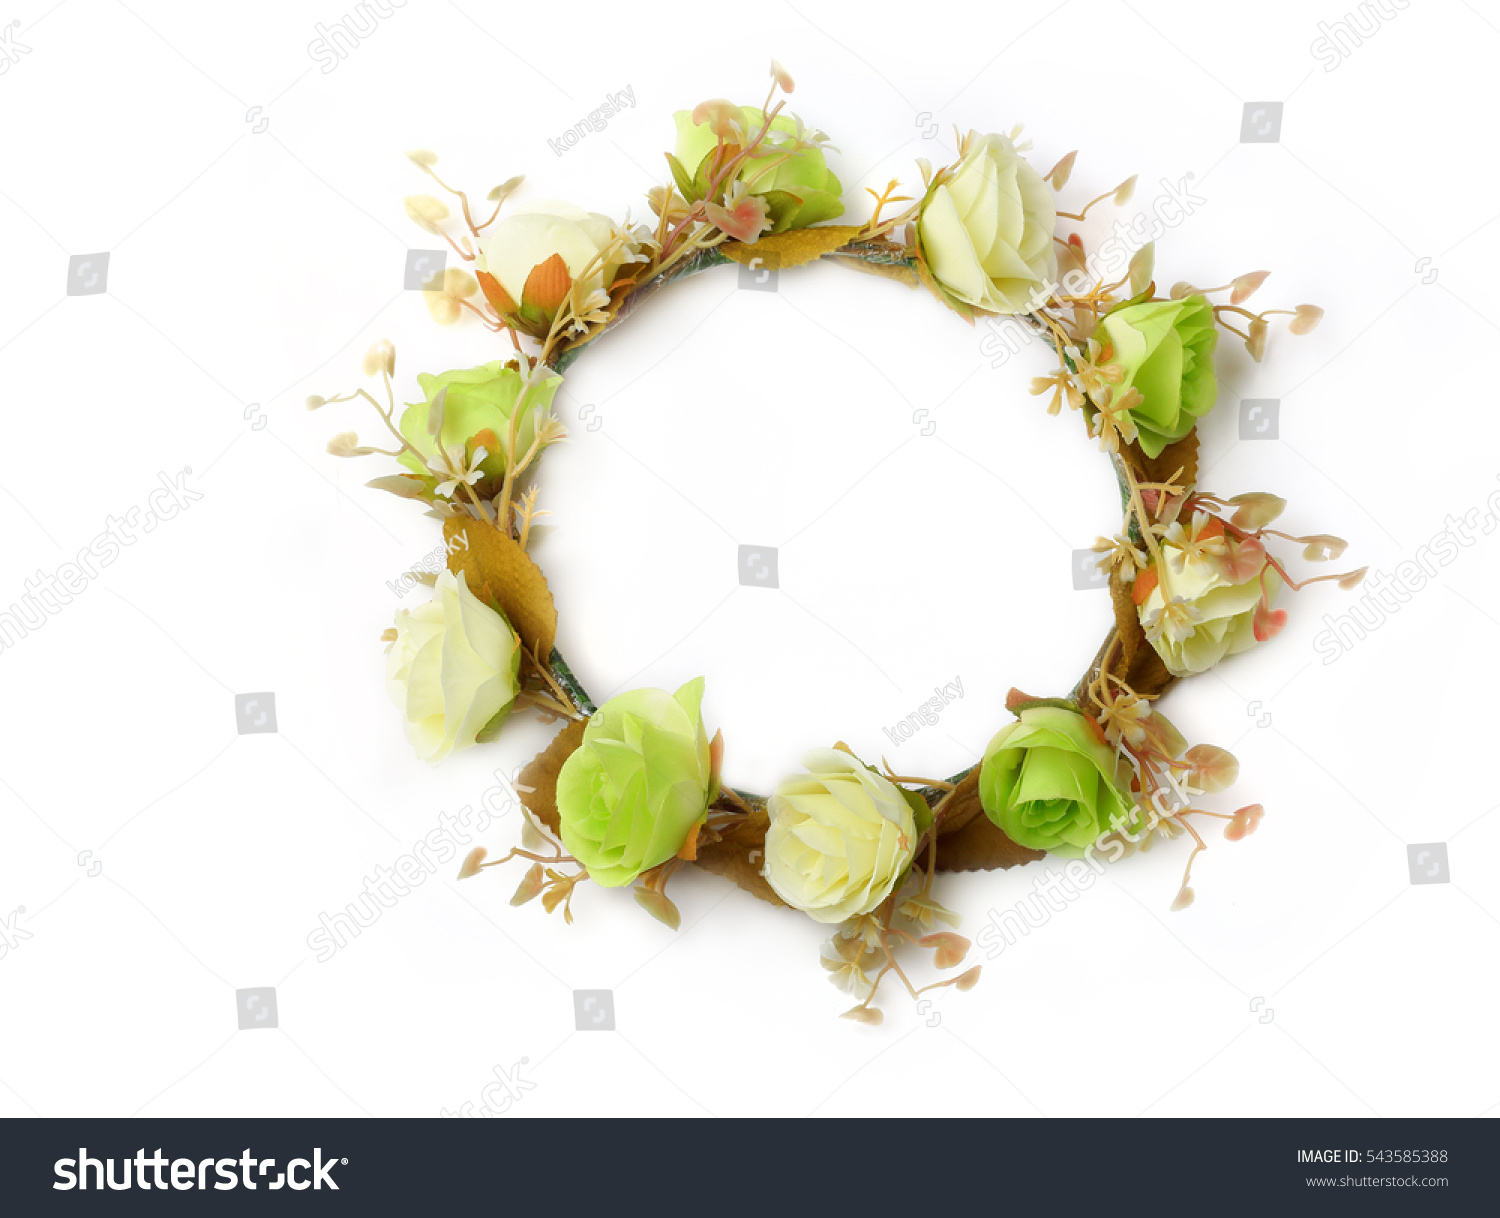 Royalty free top view of colorful fake flower crown 543585388 top view of colorful fake flower crown or forest coronal isolated on white background izmirmasajfo